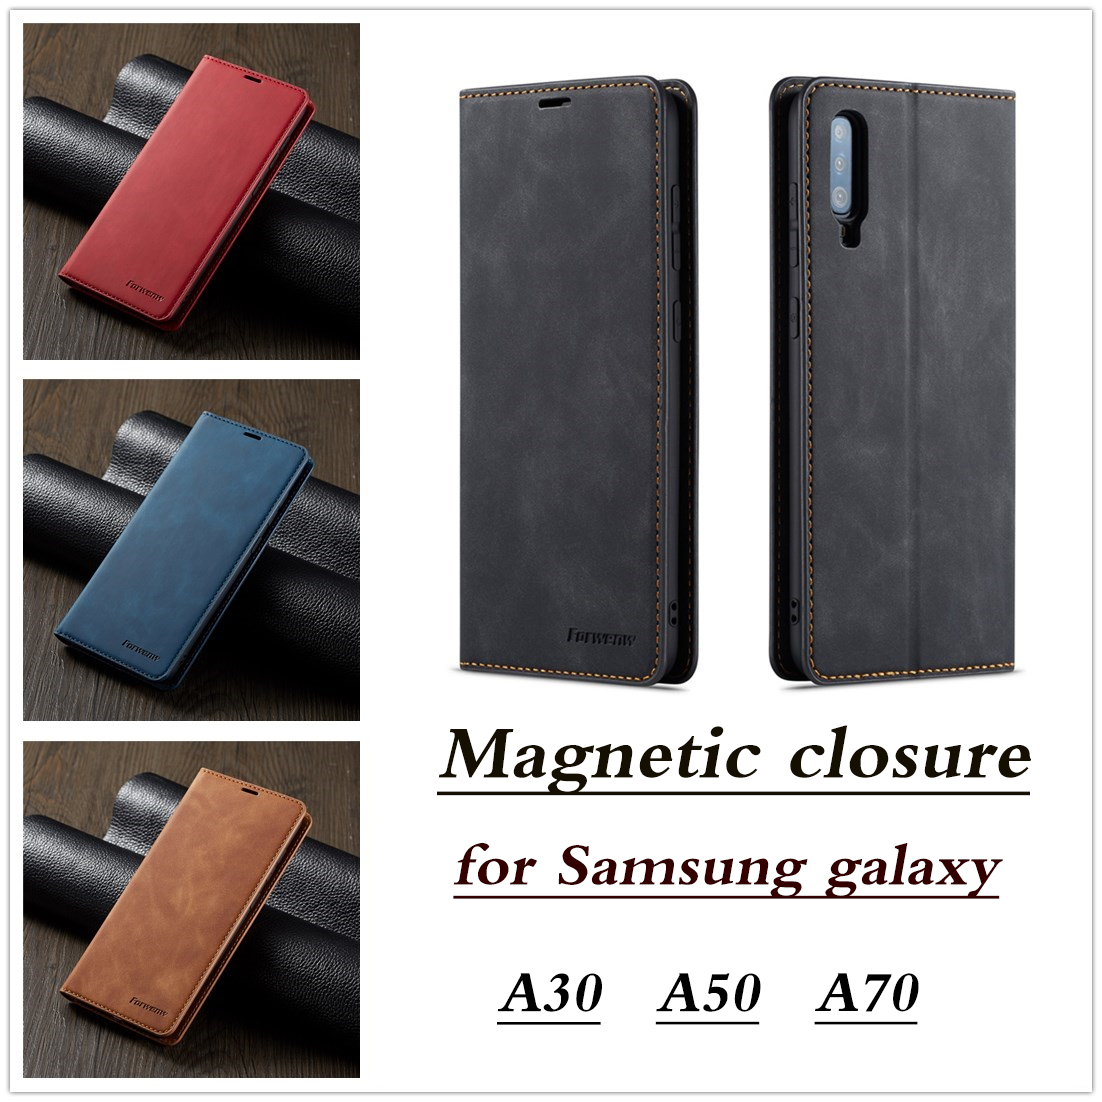 Case for Samsung Galaxy A50 A70 A30 A40 A 30 50 70 40 Flip Leather Coque Book Cover Luxury Business Magnetic Wallet Holder Cases